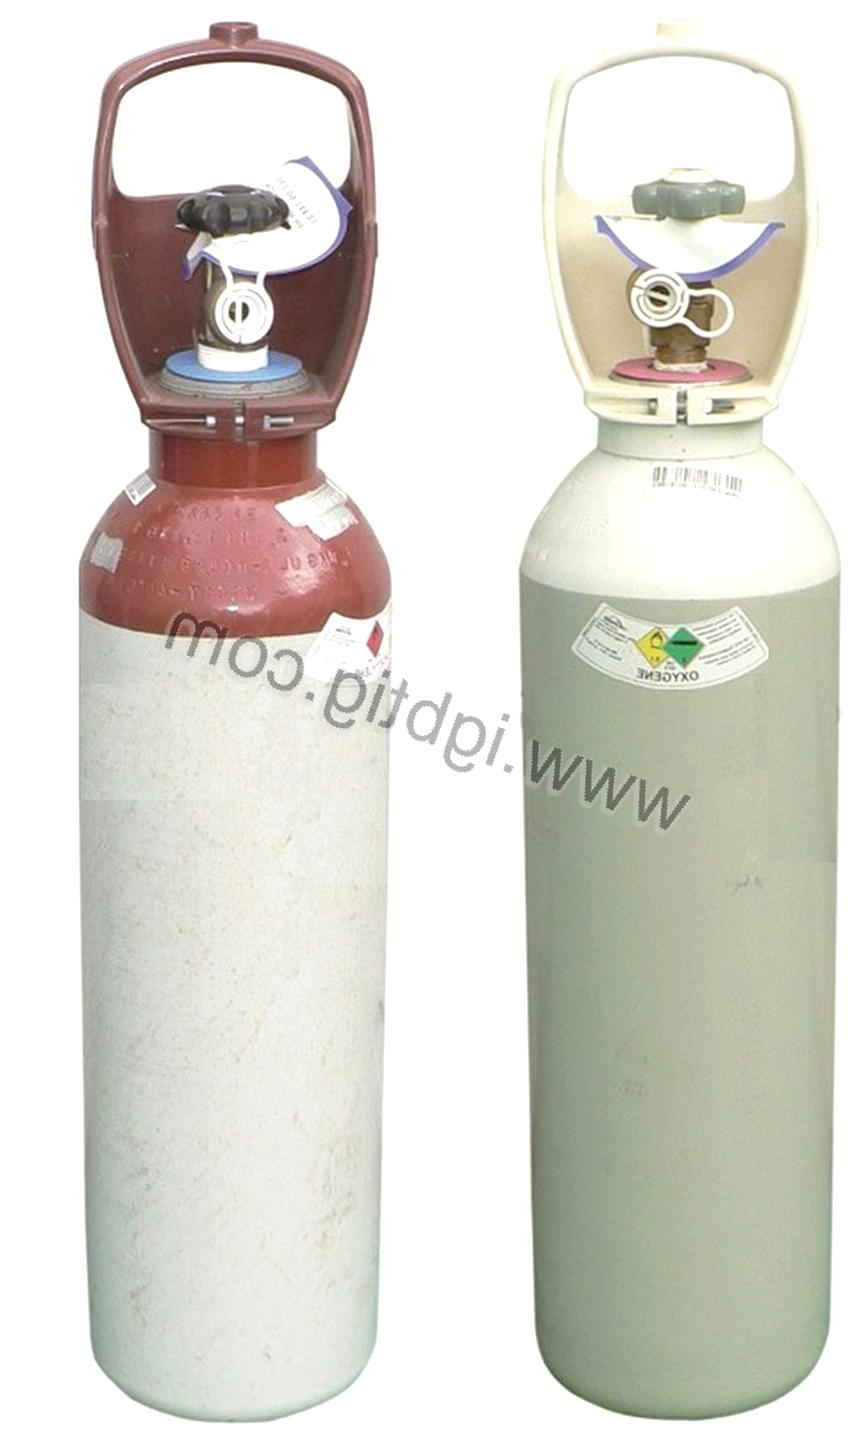 Bouteille Oxygene Acetylene D Occasion